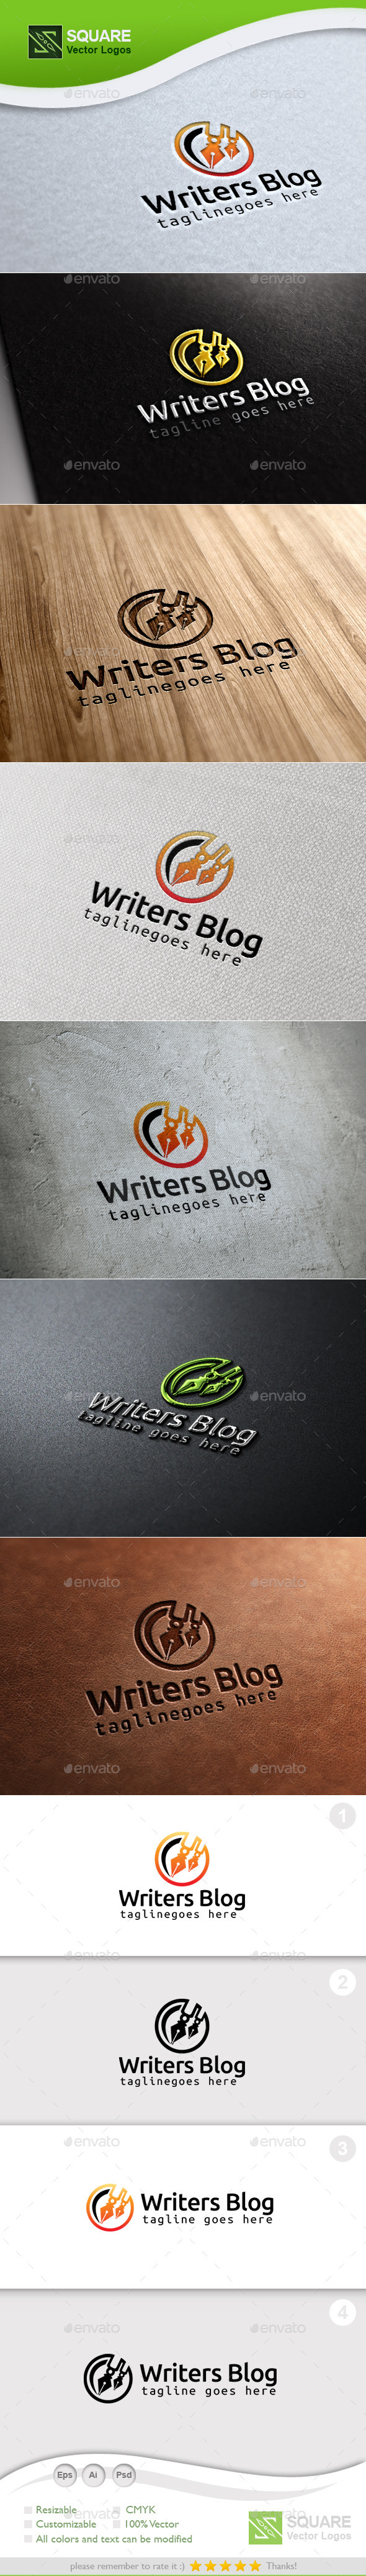 GraphicRiver Writer Blog Custom Logo Template 9987132